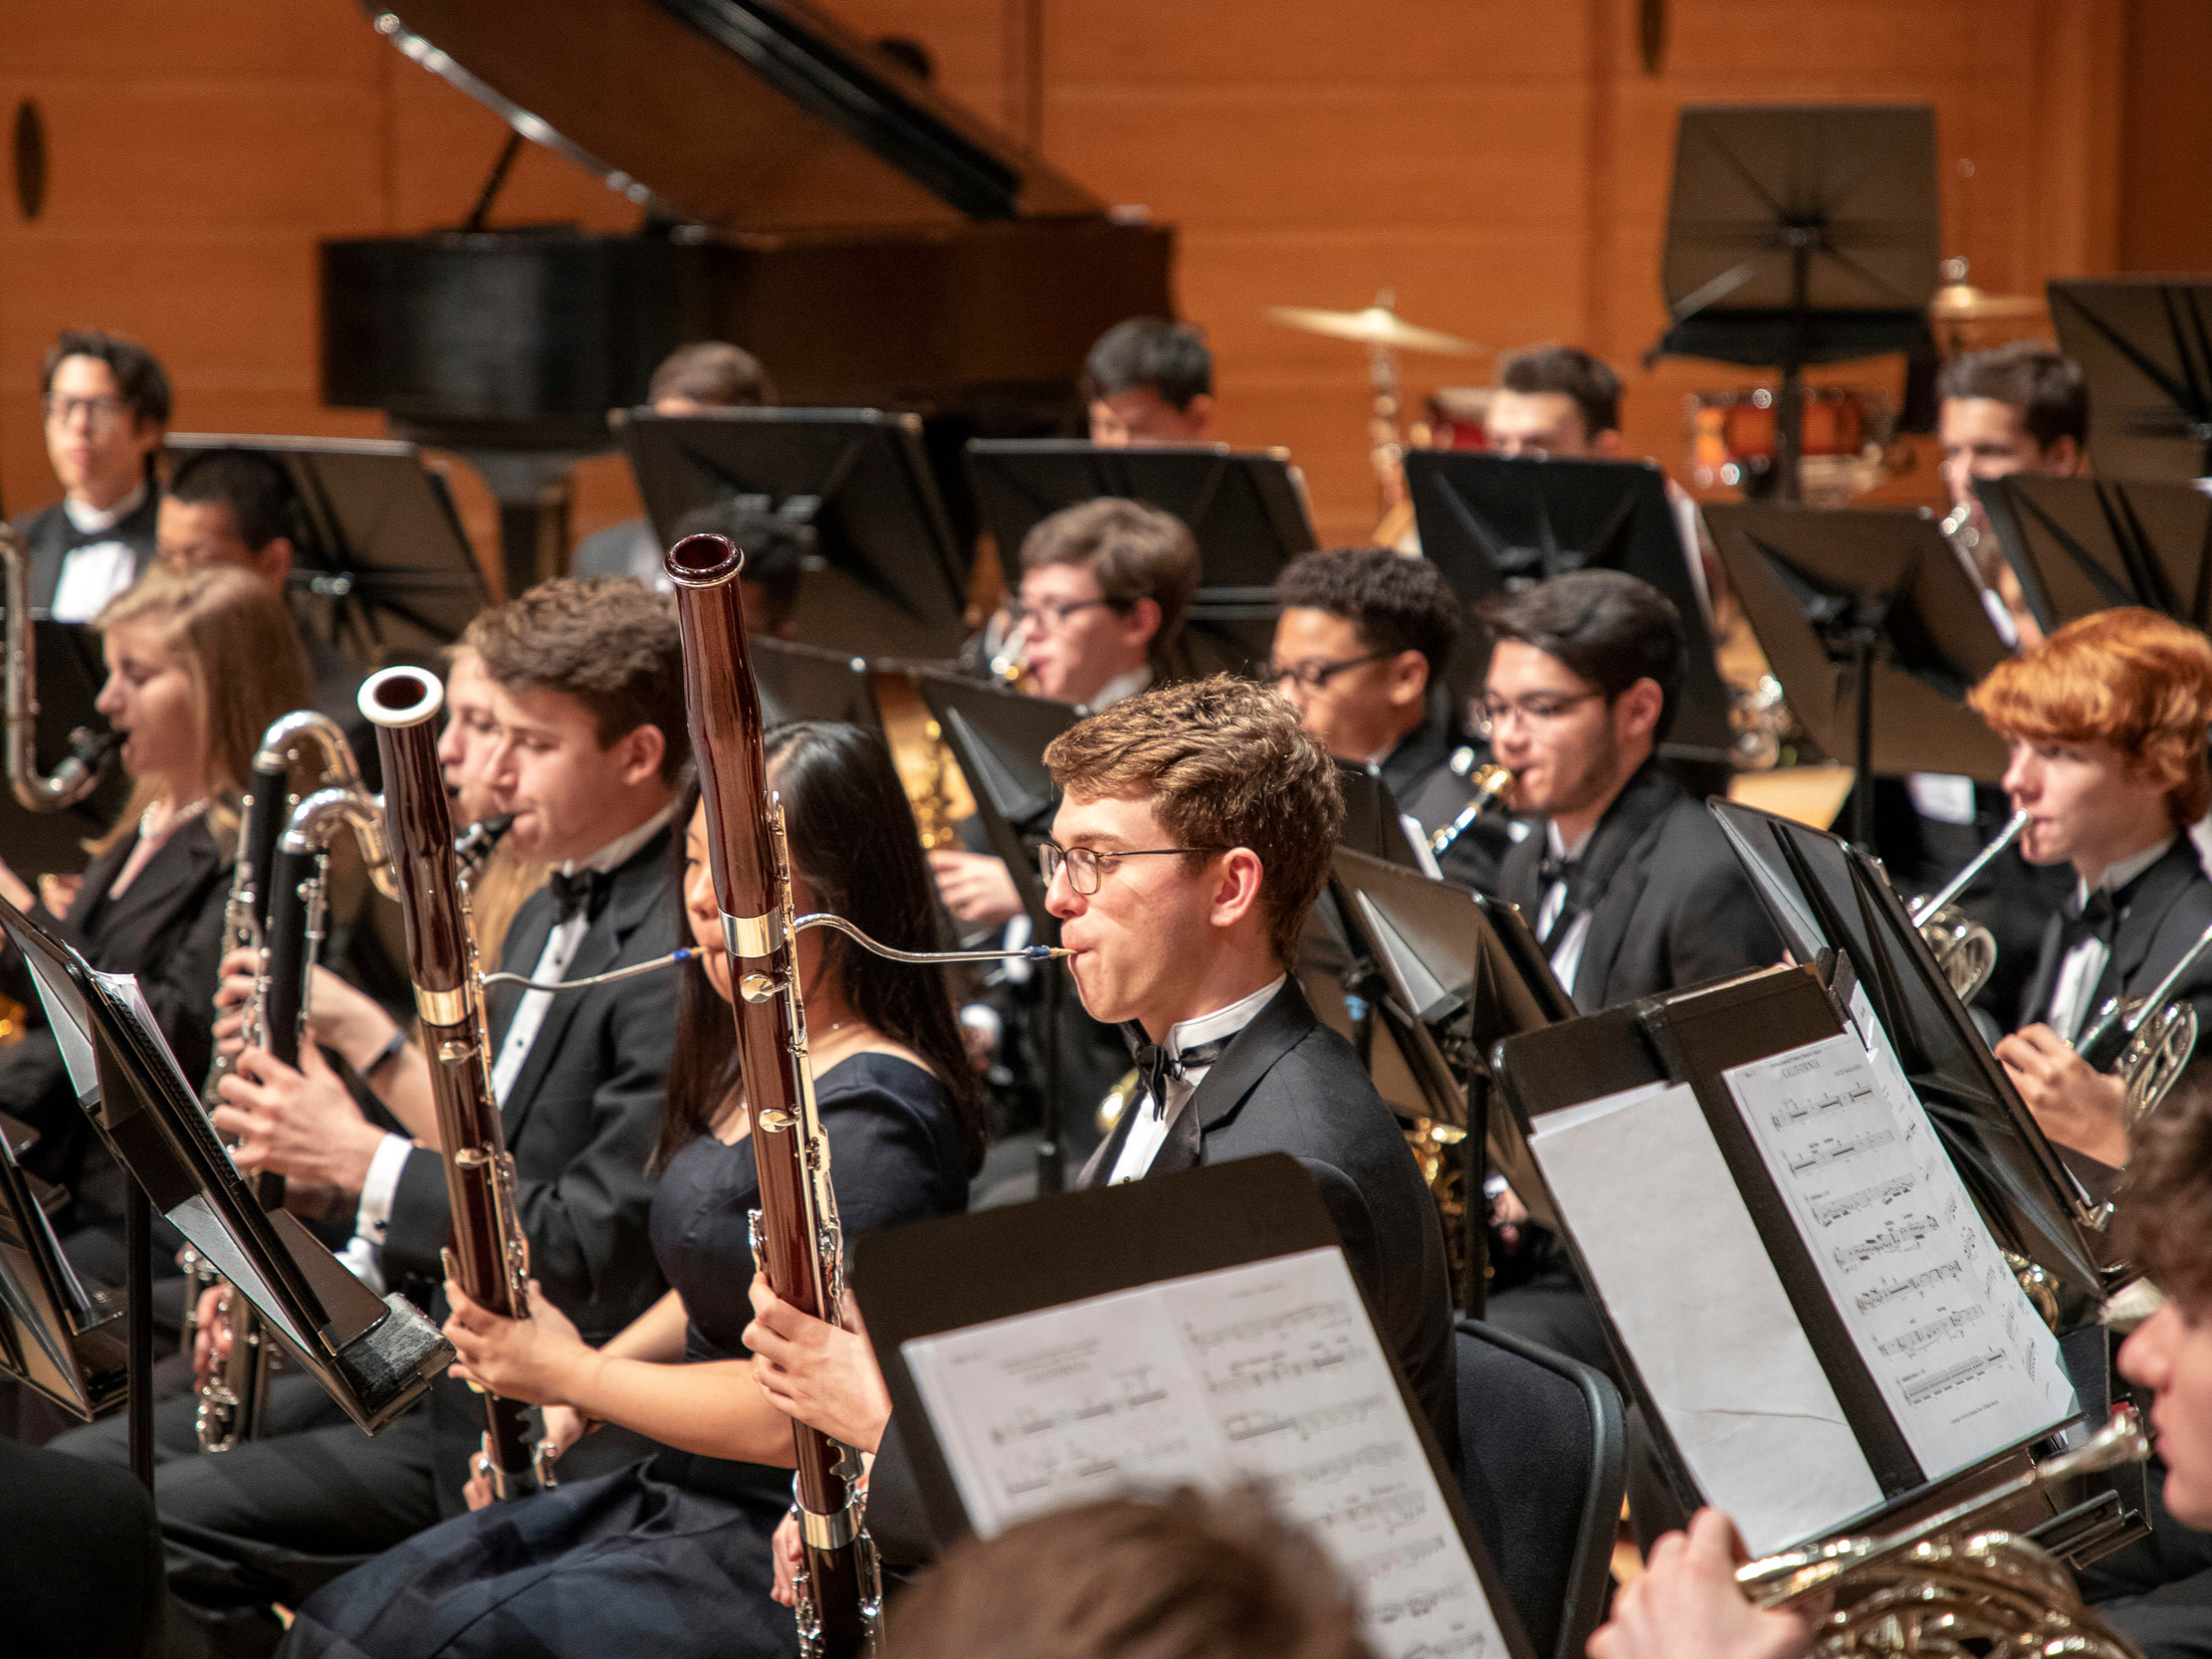 Join the music - As the premier youth wind ensemble in the Atlanta metropolitan area, the Atlanta Youth Wind Symphony provides positive and transformative musical experiences for talented high school musicians through high-quality instruction and exceptional music-making opportunities.